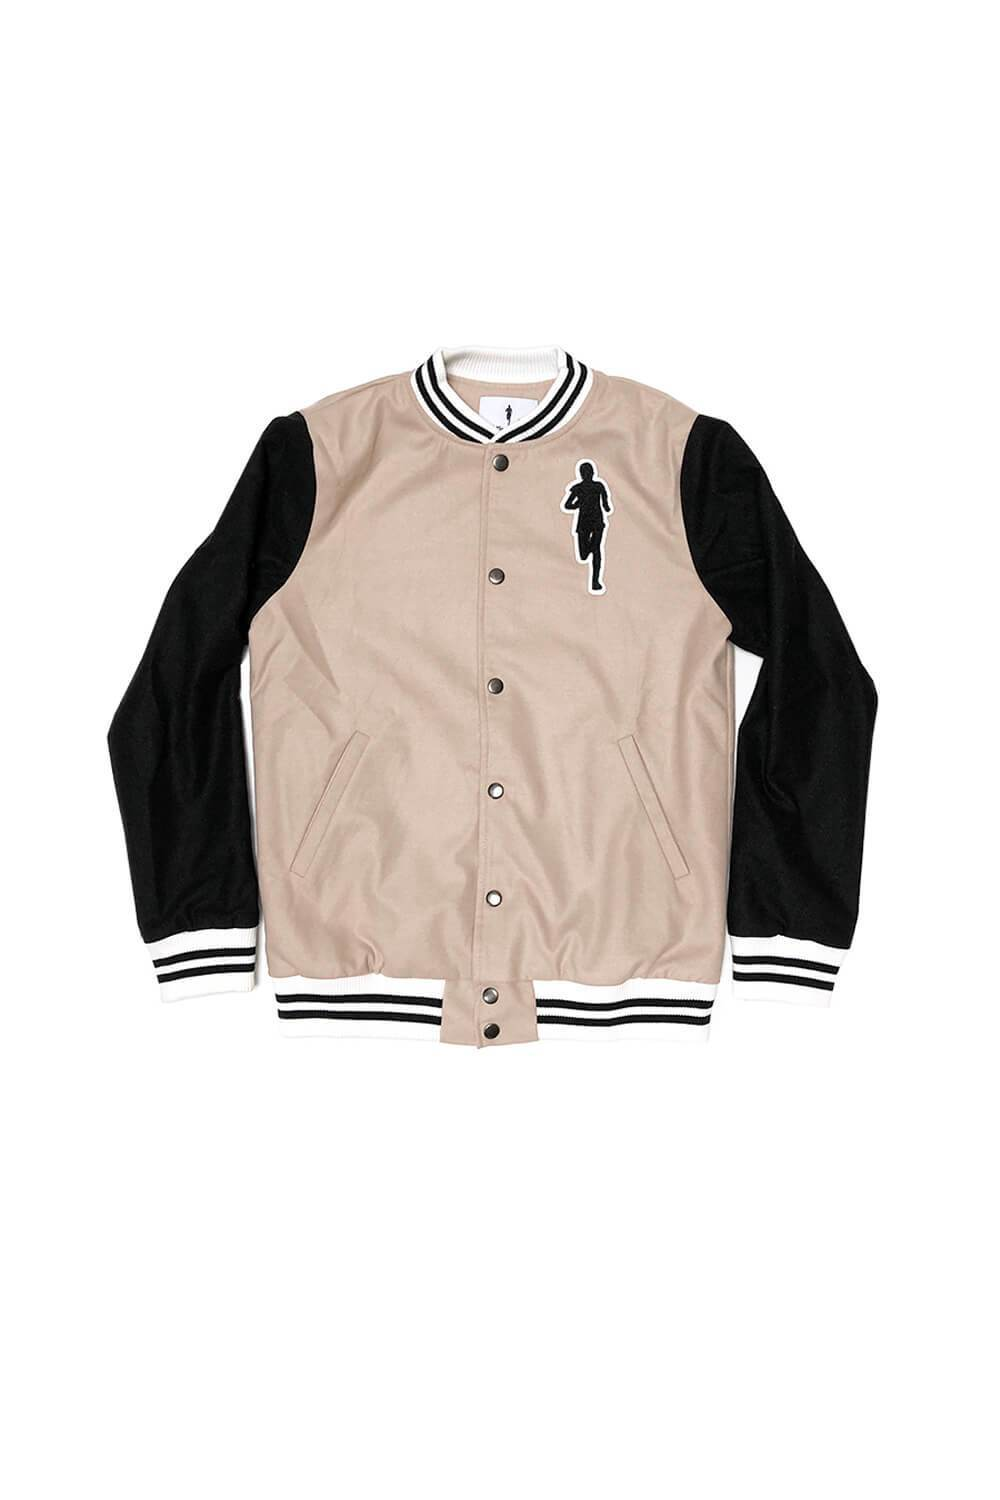 Varsity Jacket - Tan/Black - Sarah Marie Design Studio